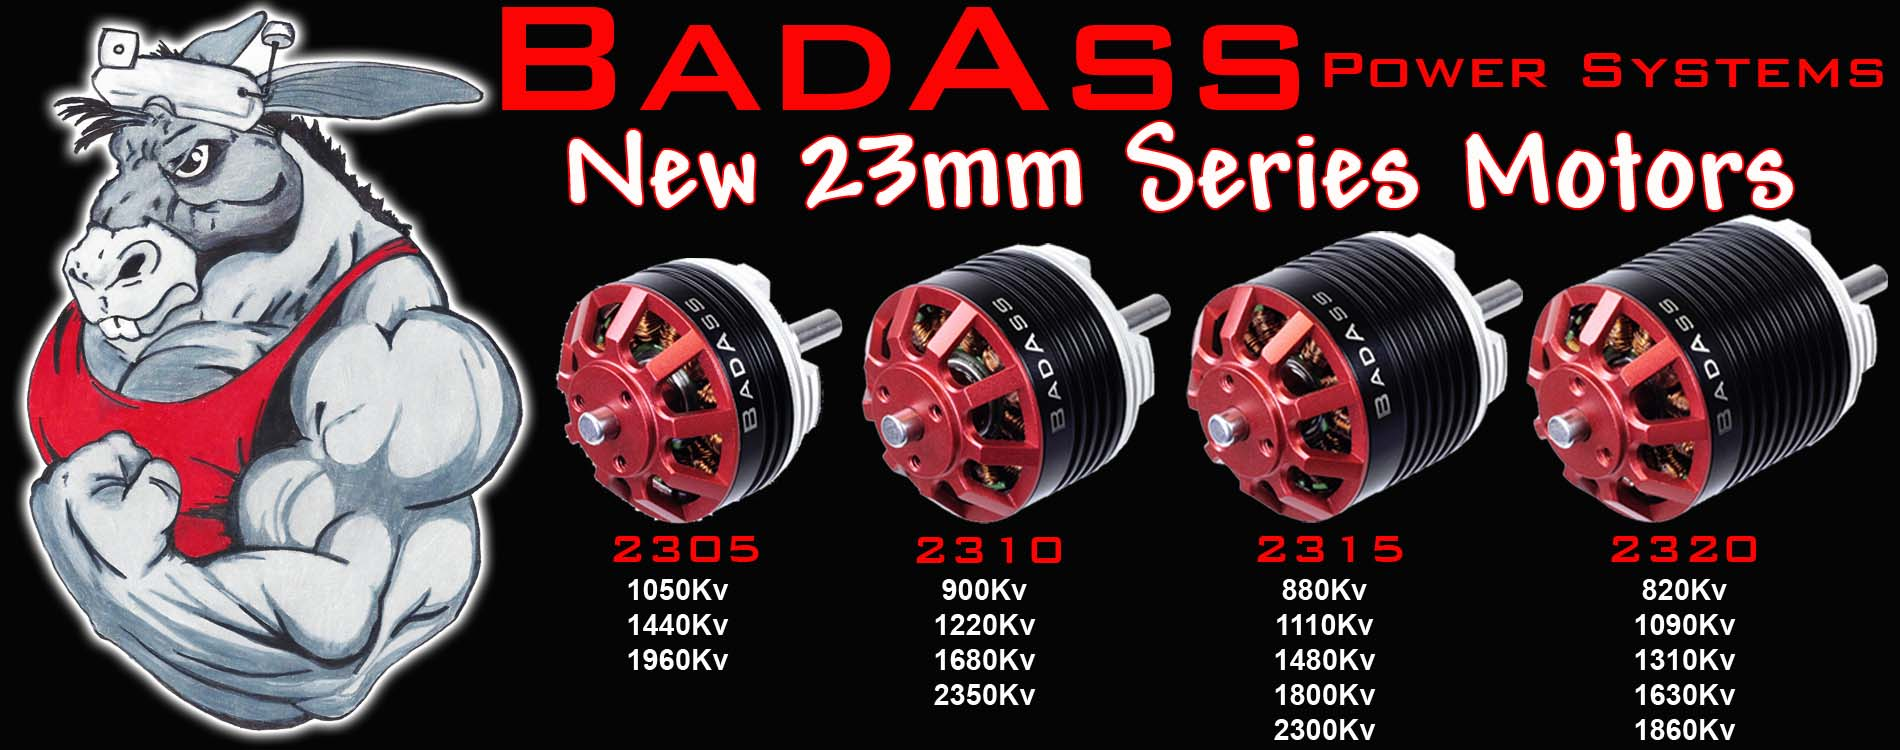 BadAss 23mm Series Motors